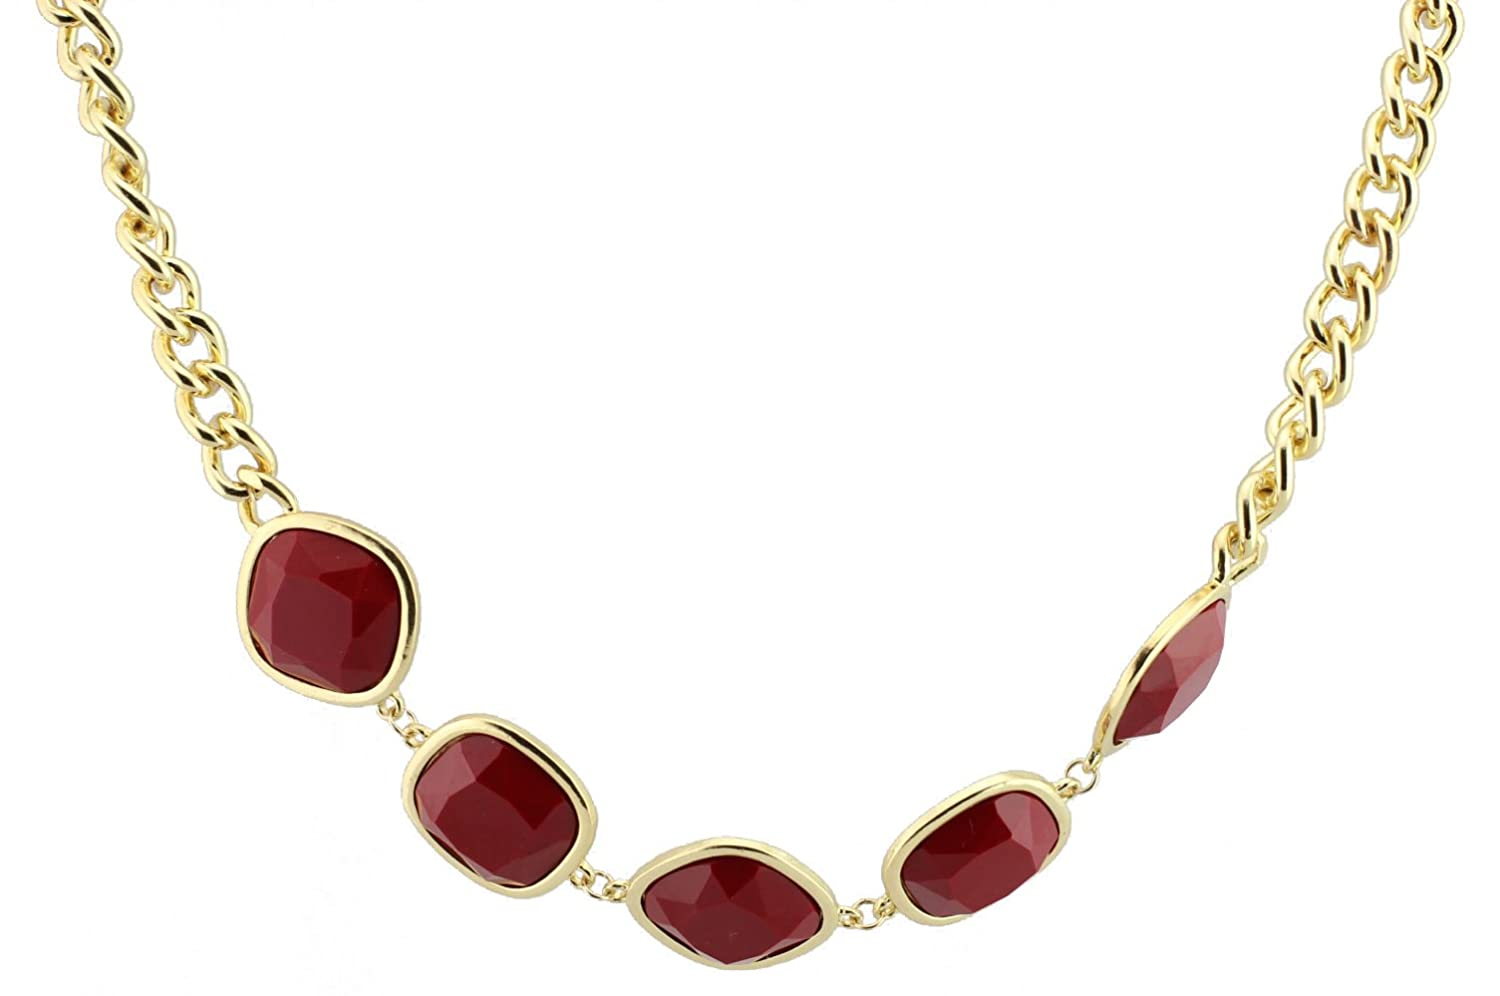 FUNDAISY 5 Stones Chain Bib Statement Necklace - Wine Red- Waist Chain/Necklace Fun Daisy Jewelry KSN0008